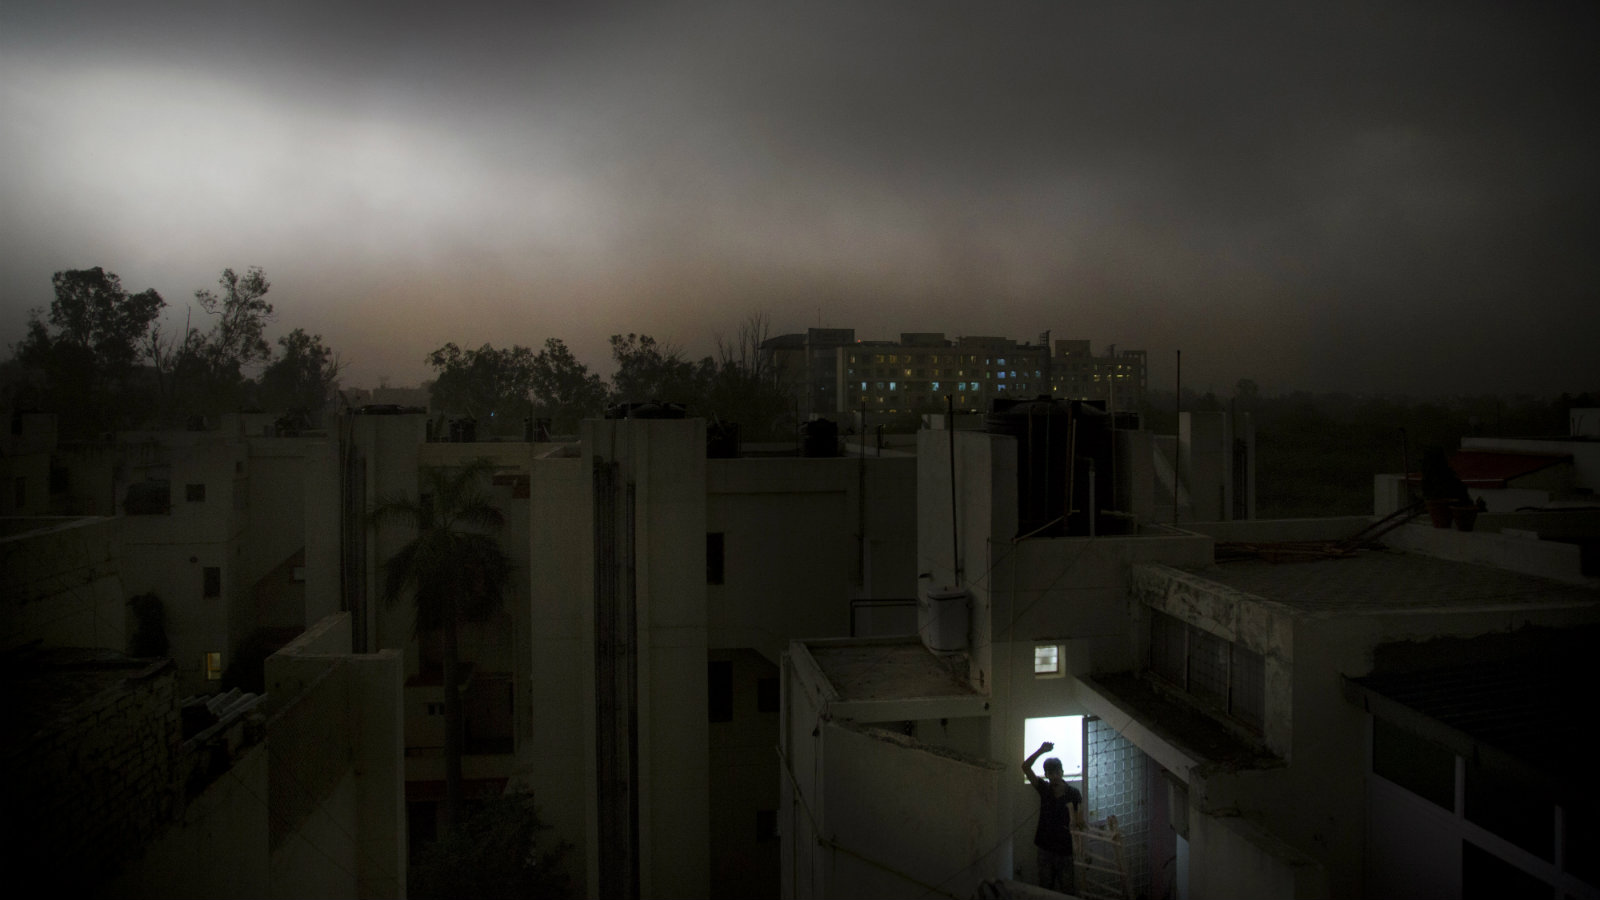 An Indian man stands on the balcony of his apartment during a suddens storm accompanied by rain in New Delhi, India, Sunday, May 13, 2018. The monsoon season is nearly six weeks away in India.